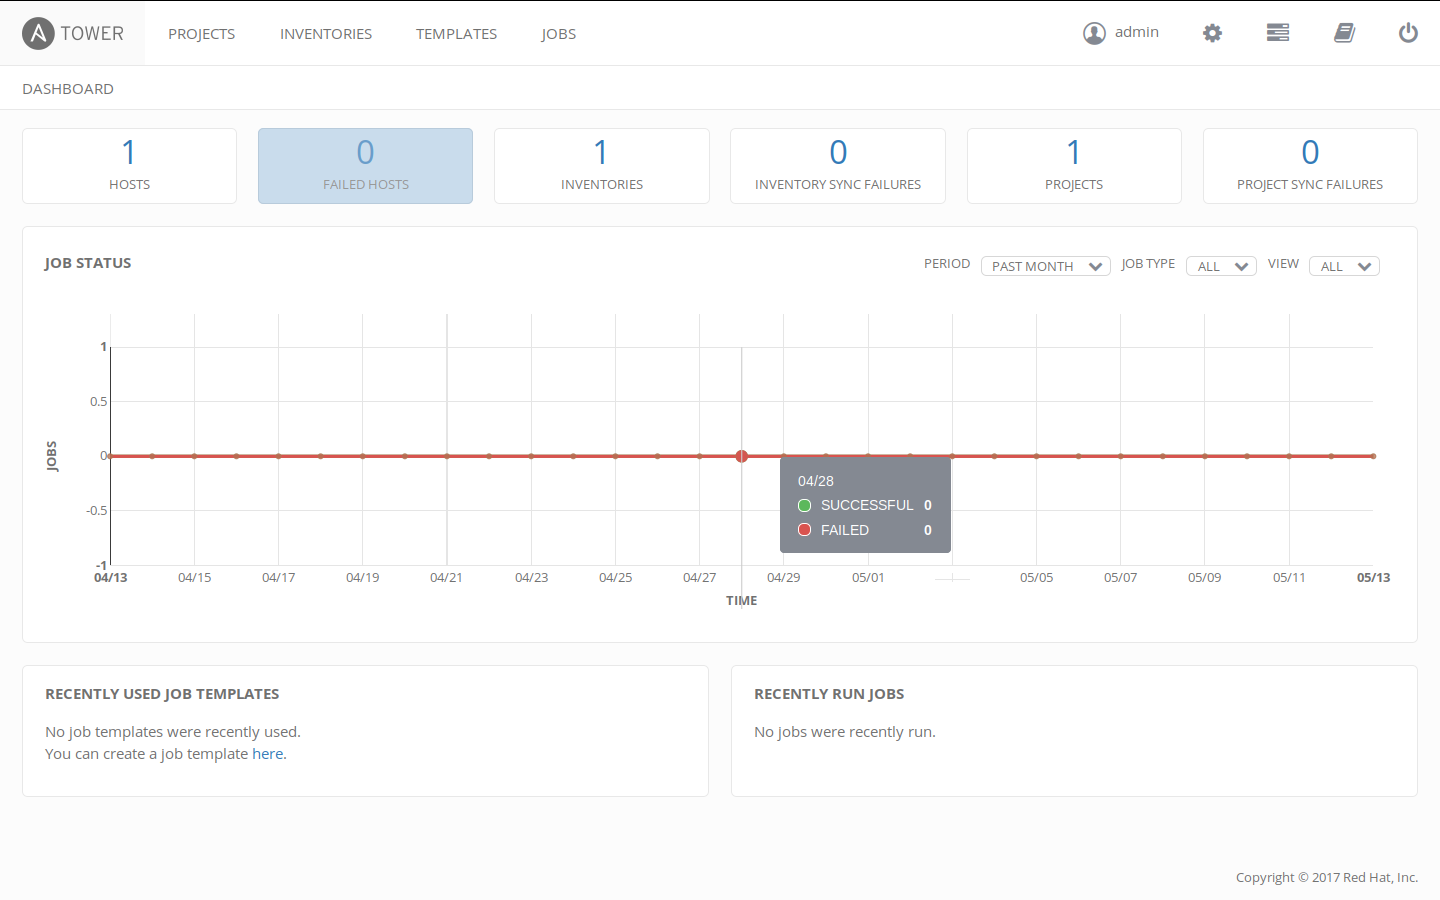 Ansible Tower dashboard